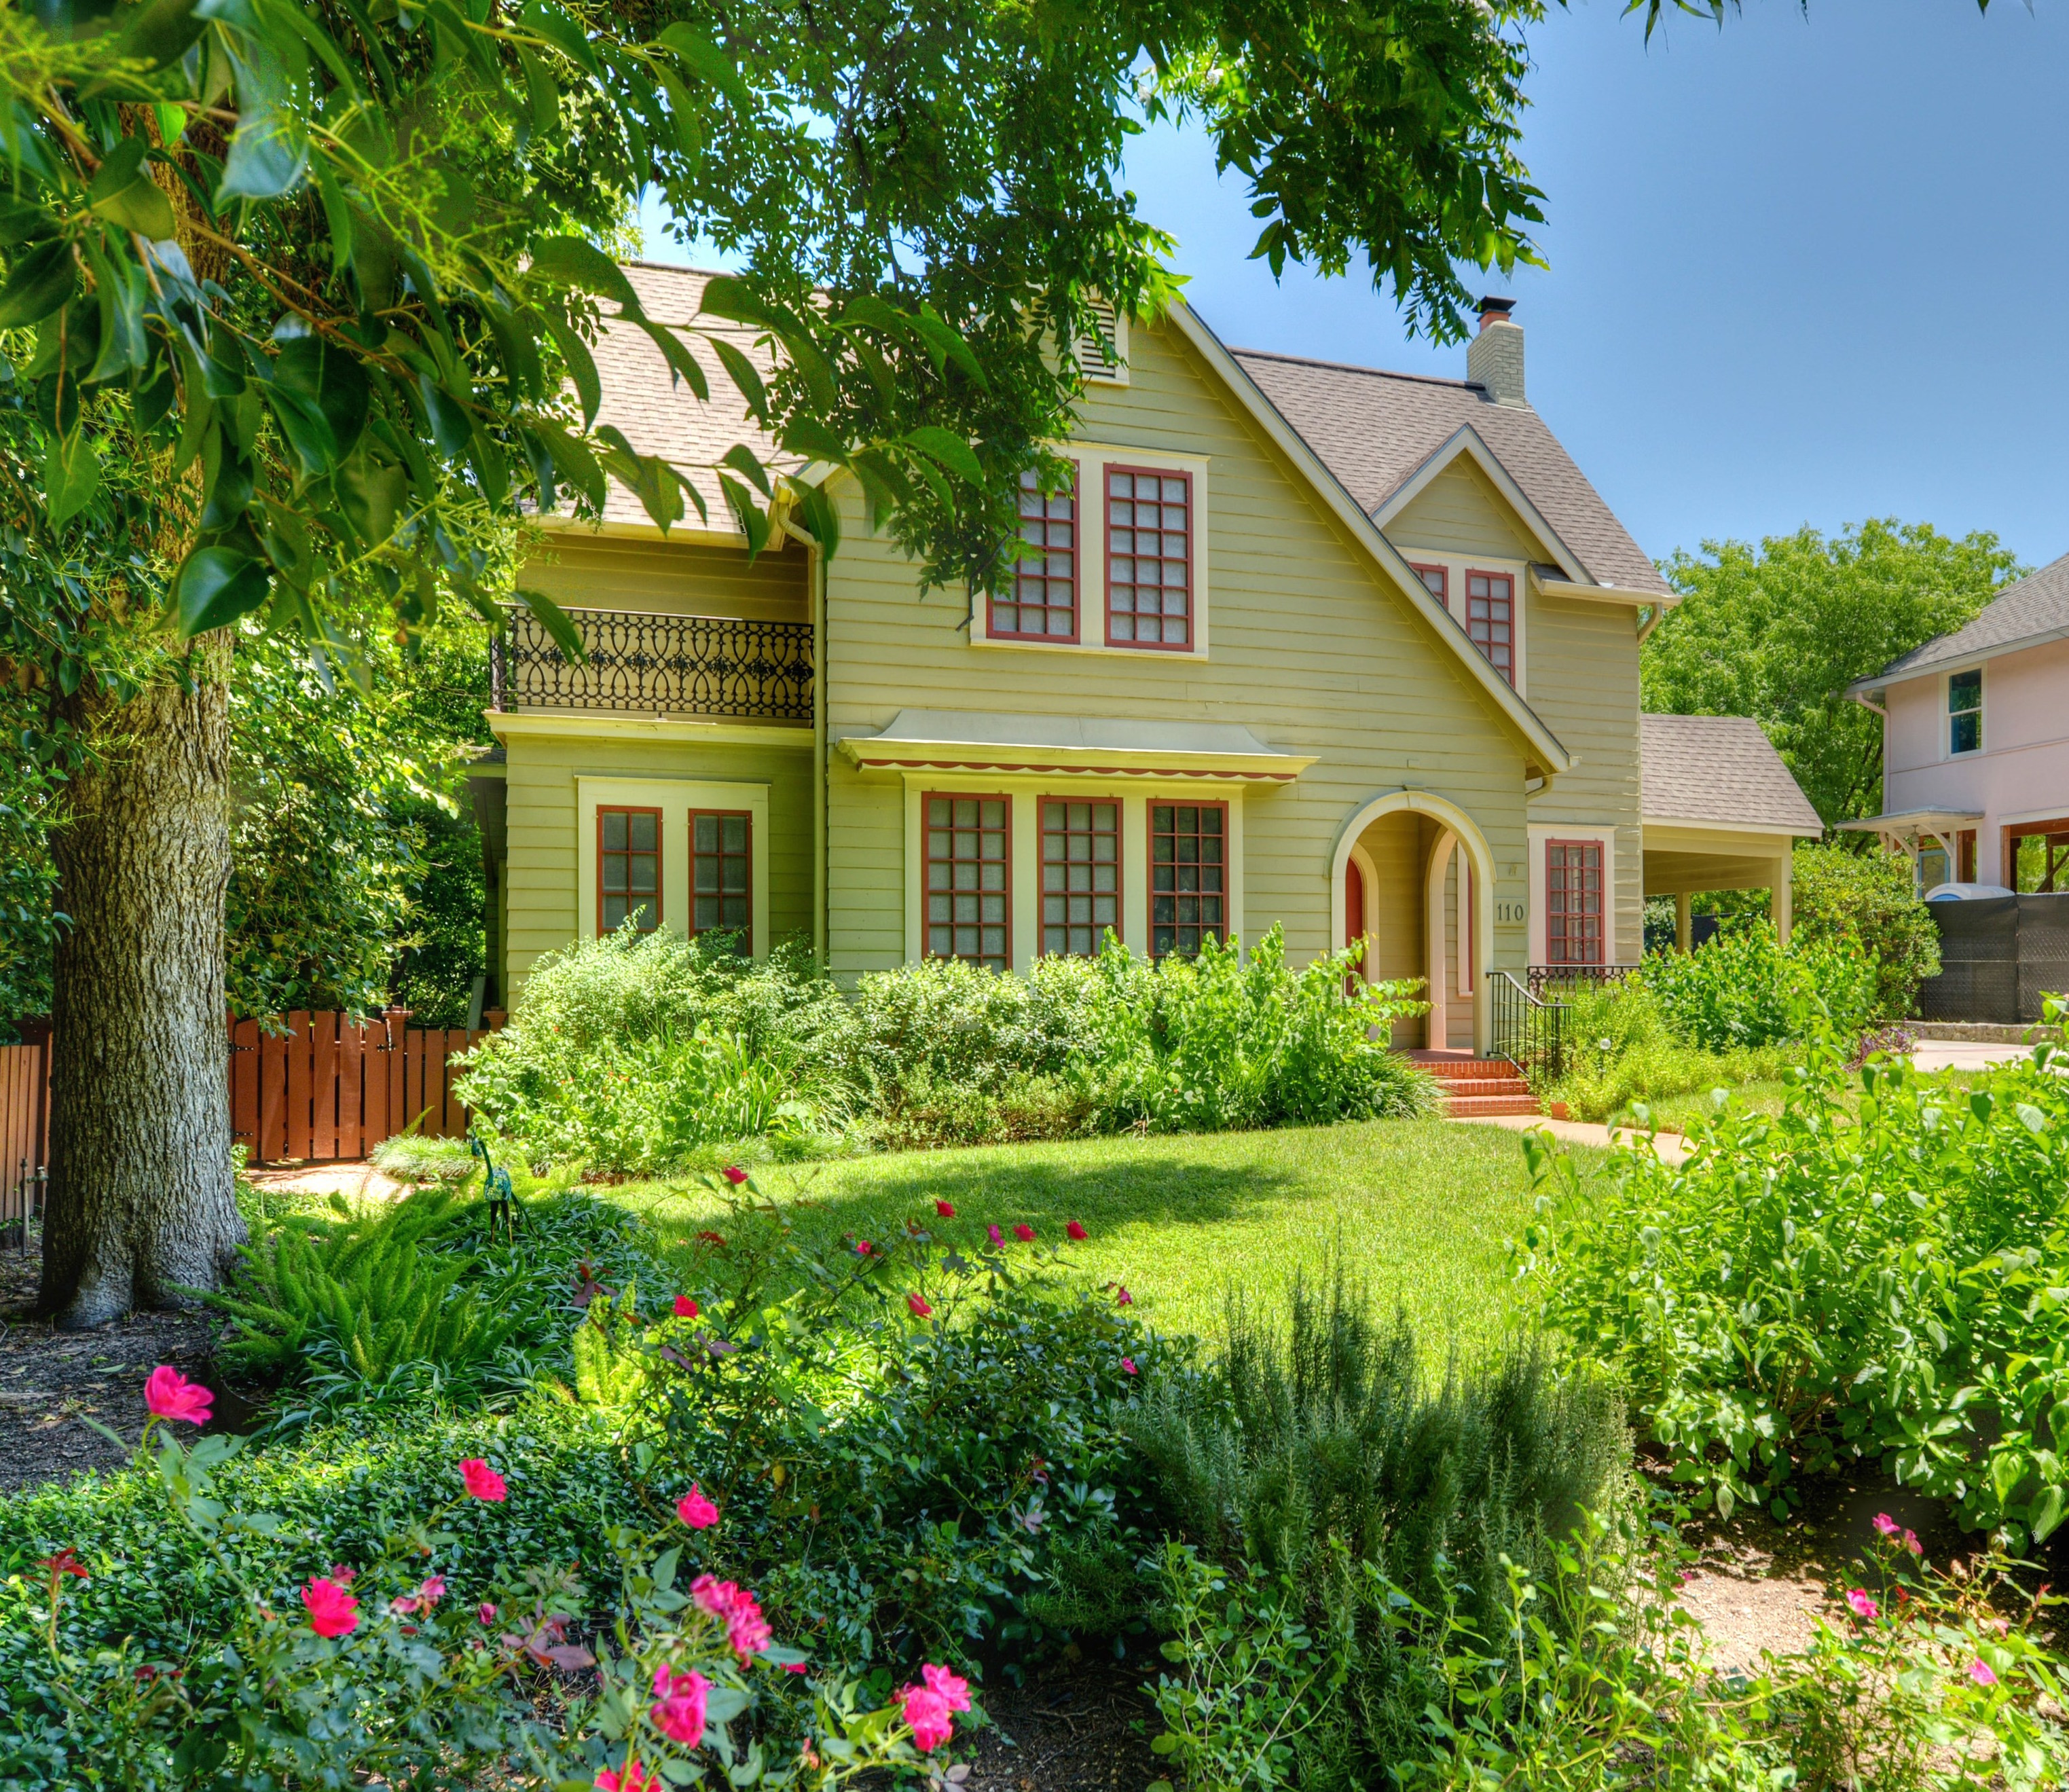 Single Family Home for Sale at Heart of Central Austin 110 W 32nd St Austin, Texas 78705 United States